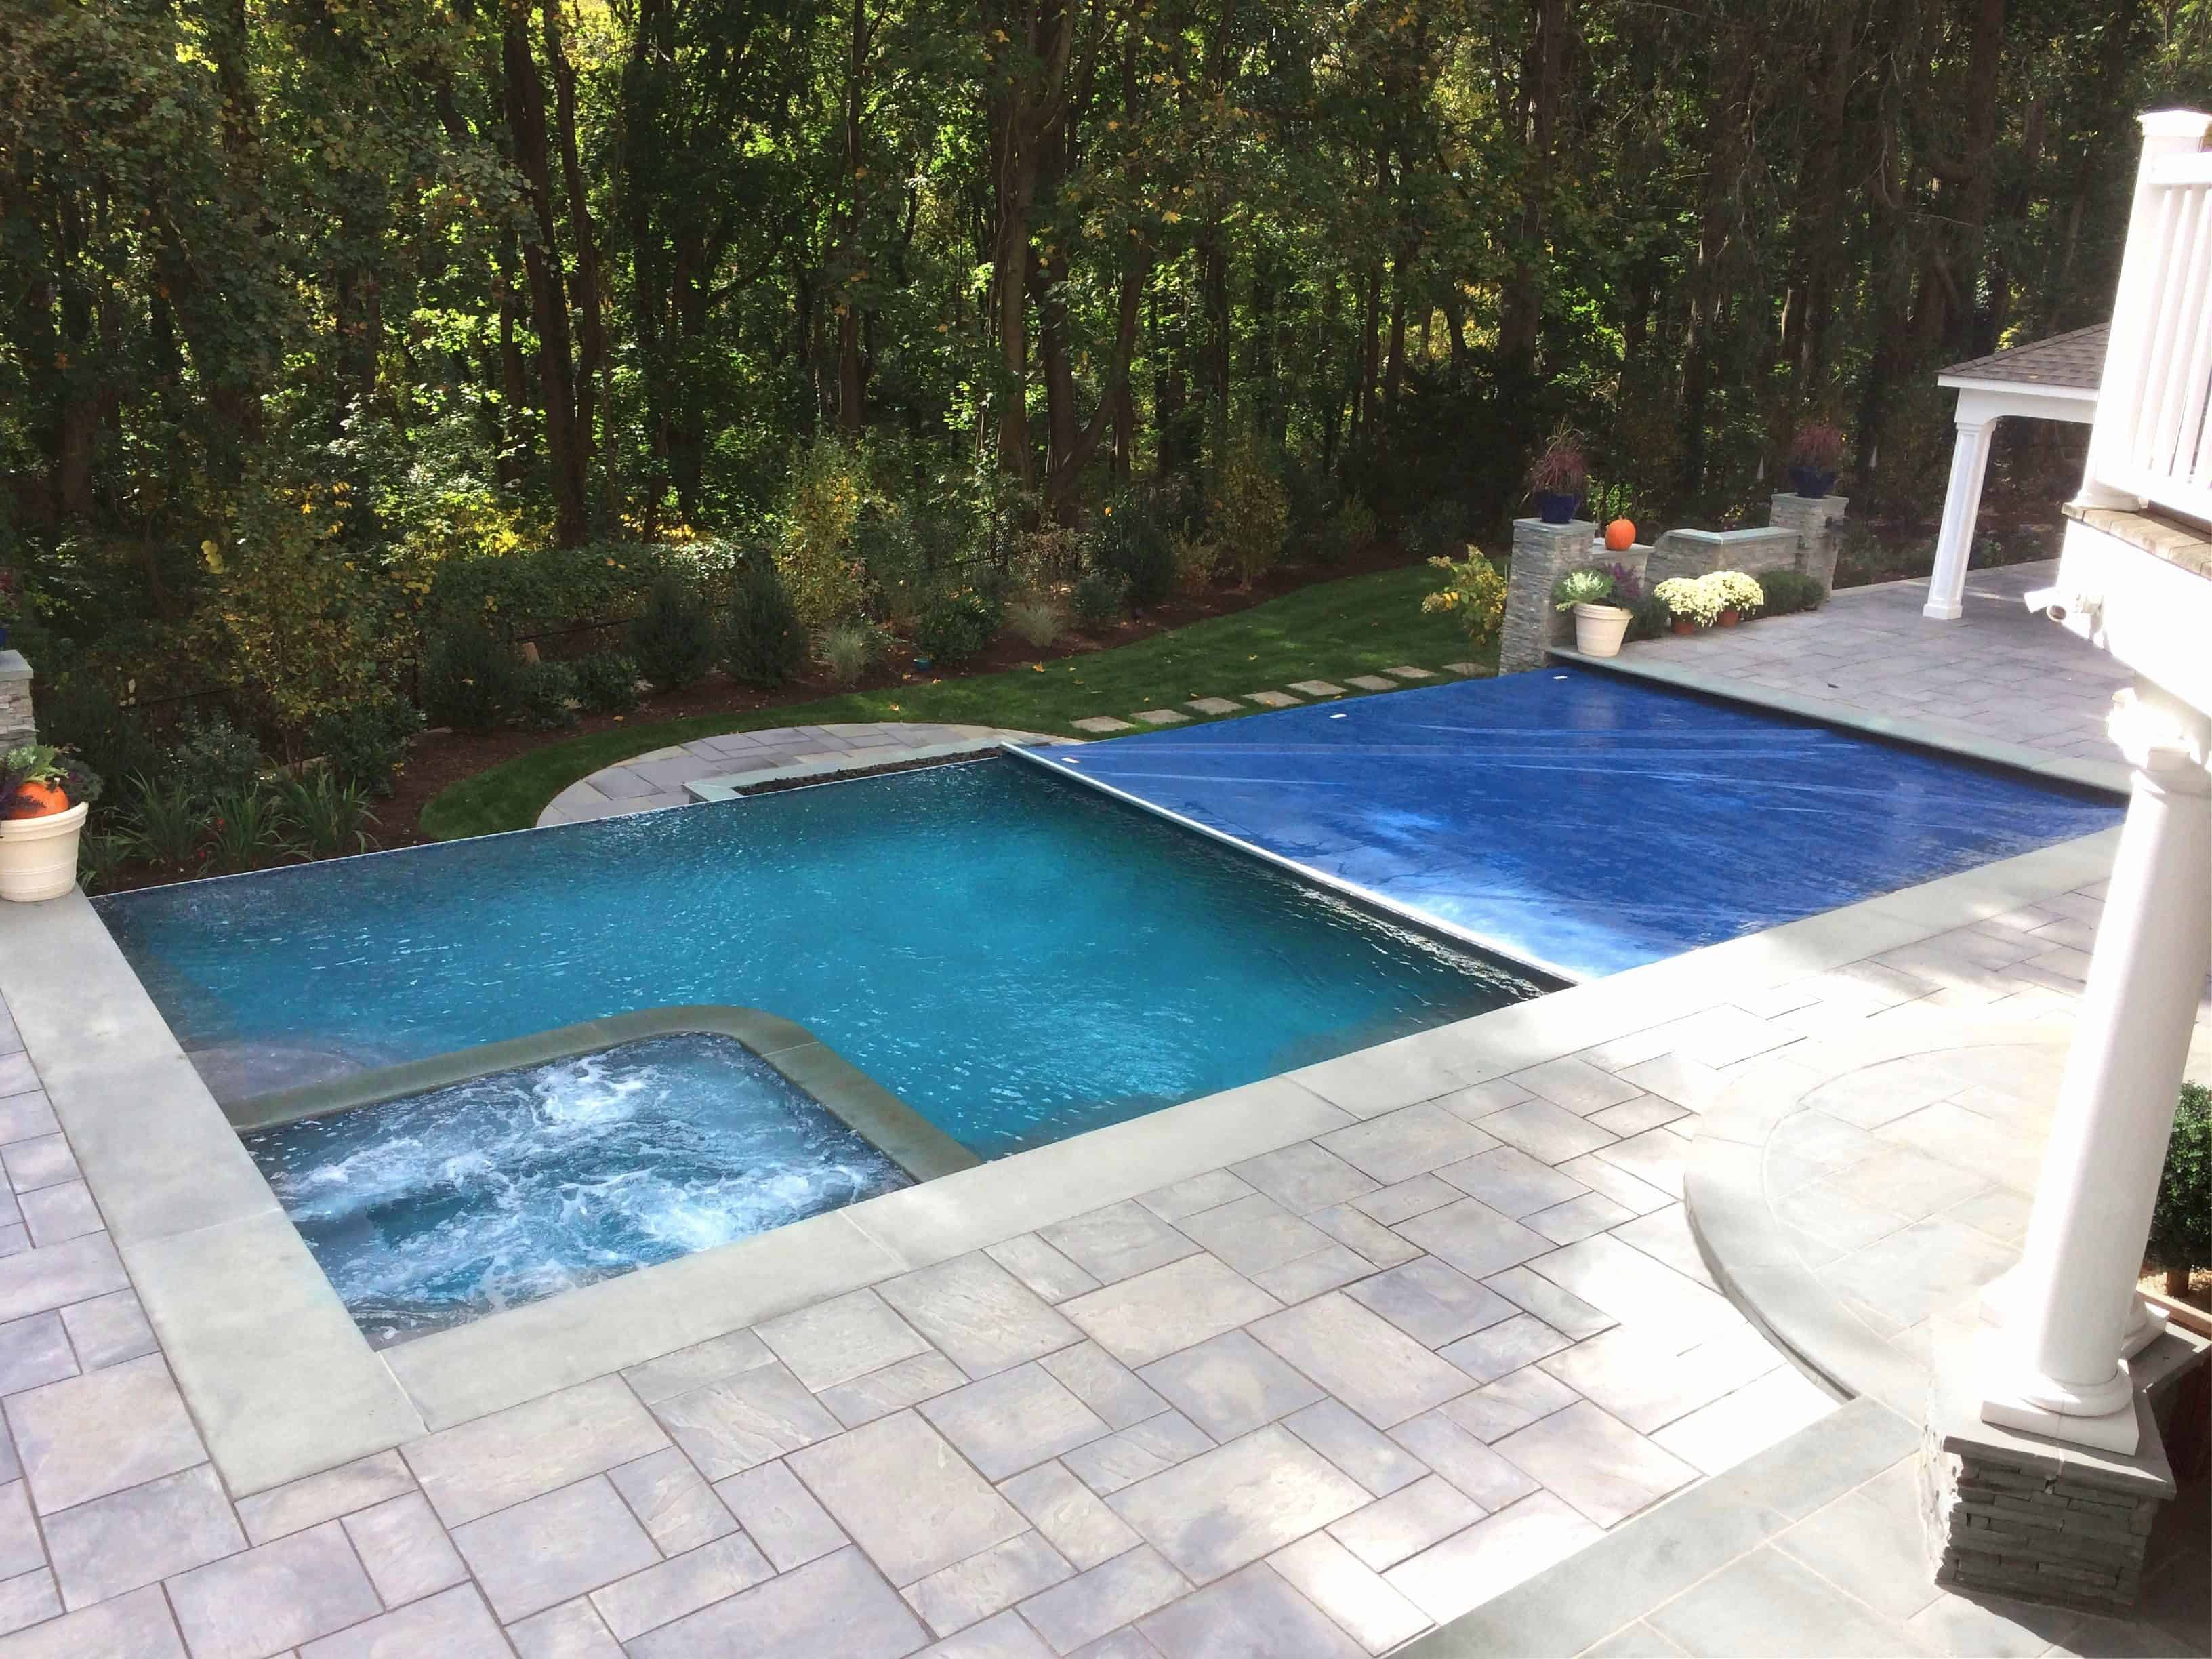 Long island pool company green island design for Pool edges design